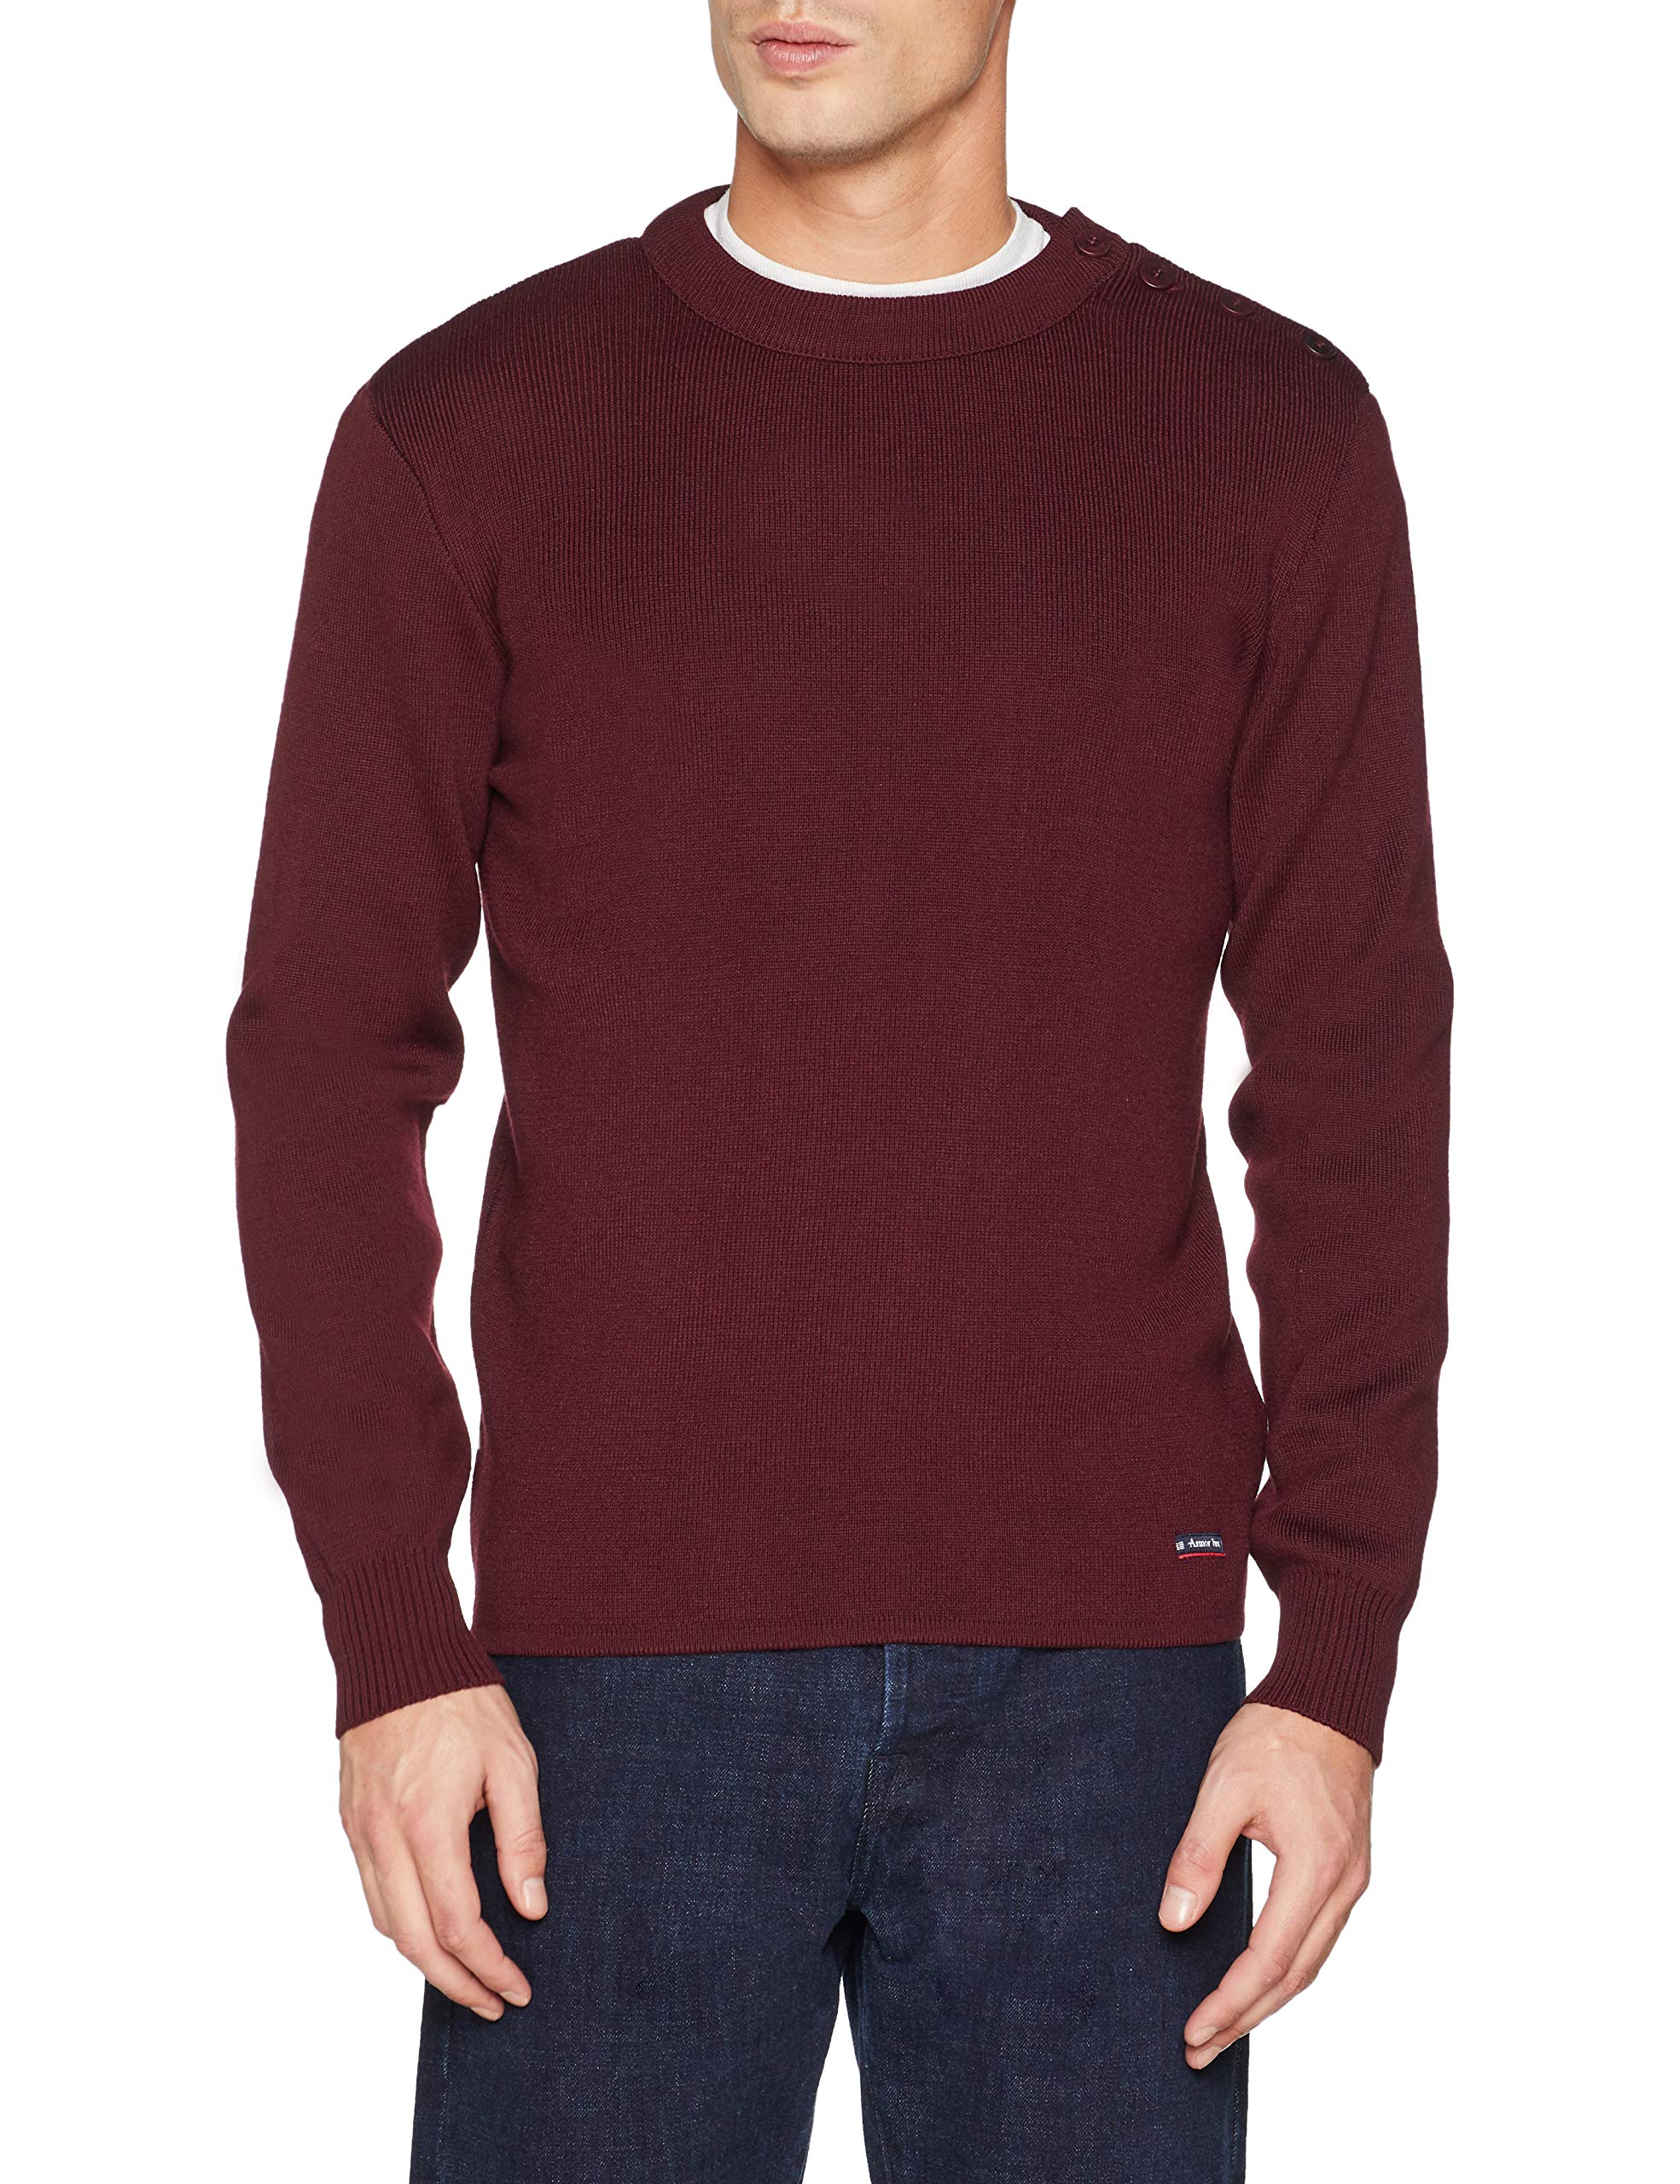 taille Large Violet Marin Xx Pull Lux Armor Homme Fabricant Xxl G5e Chianti zxOC8qI